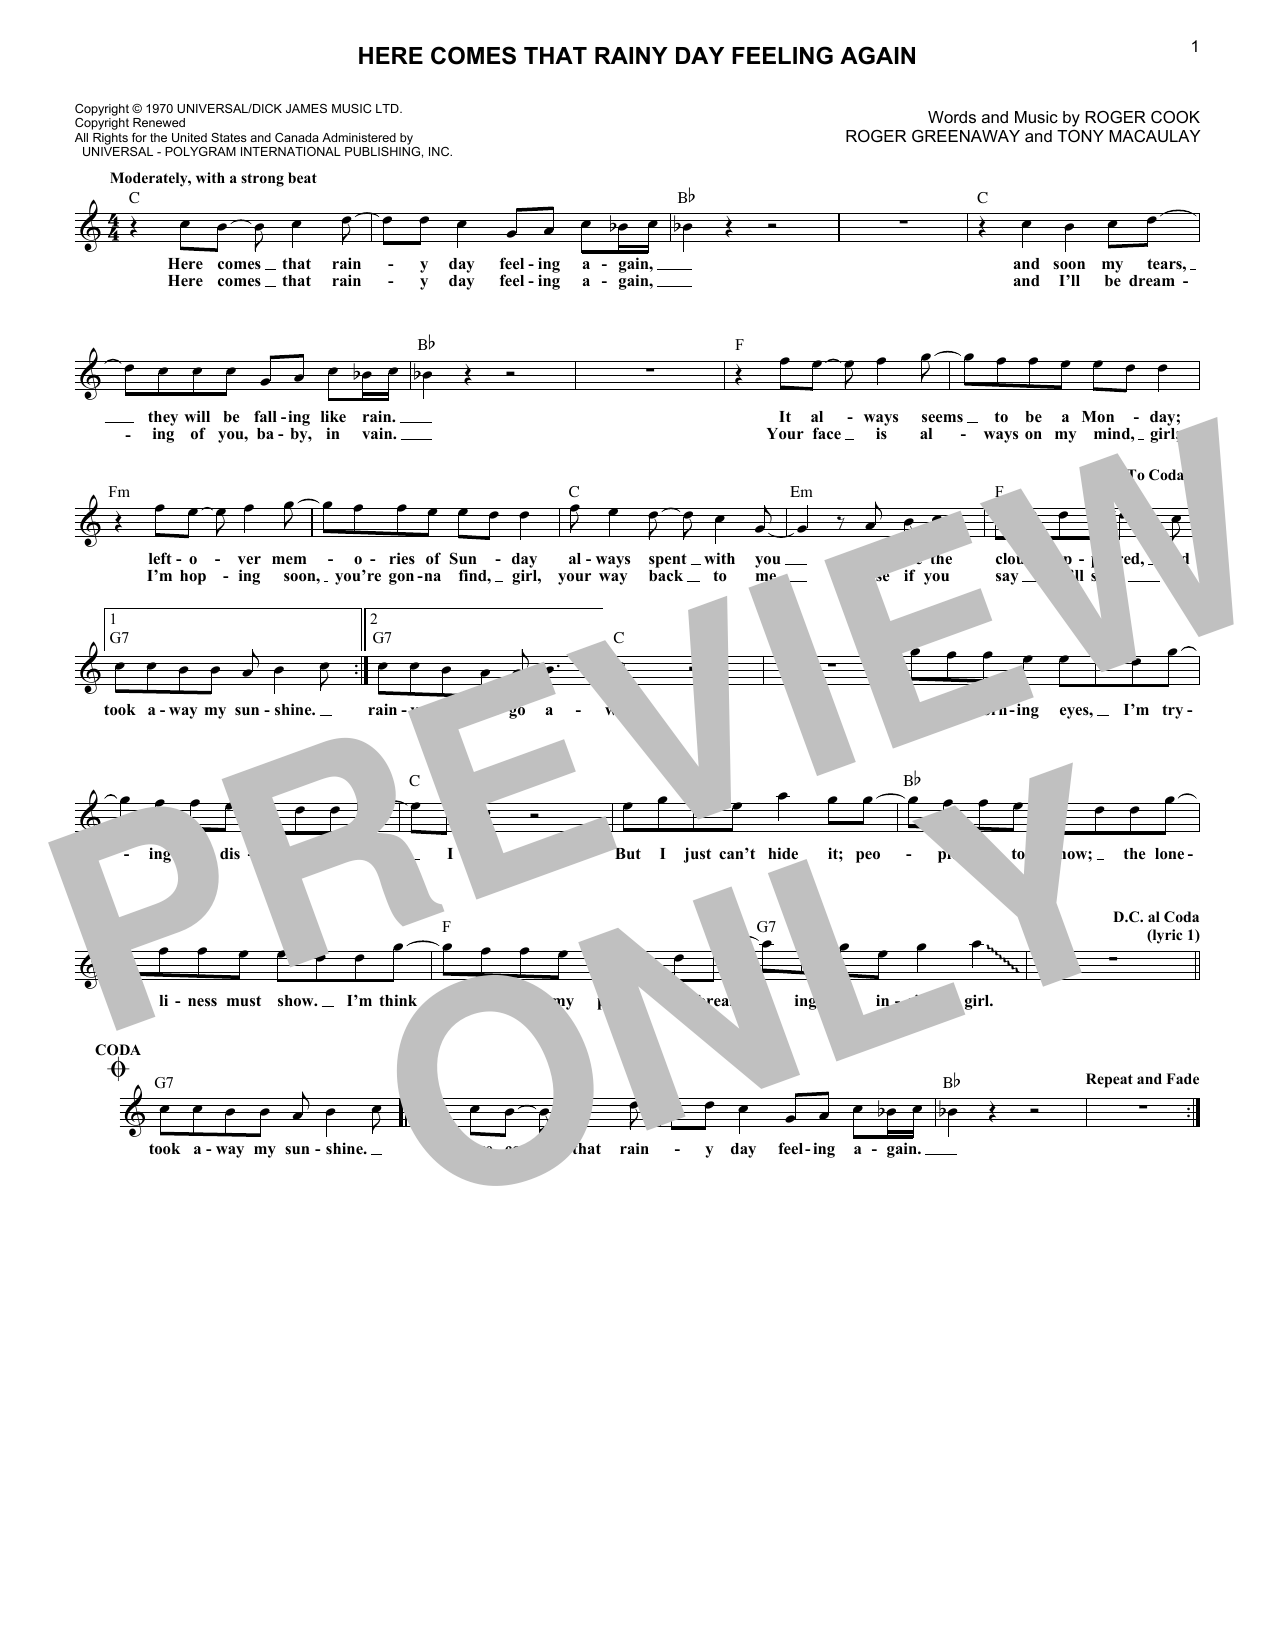 Roger Cook Here Comes That Rainy Day Feeling Again sheet music notes and chords. Download Printable PDF.